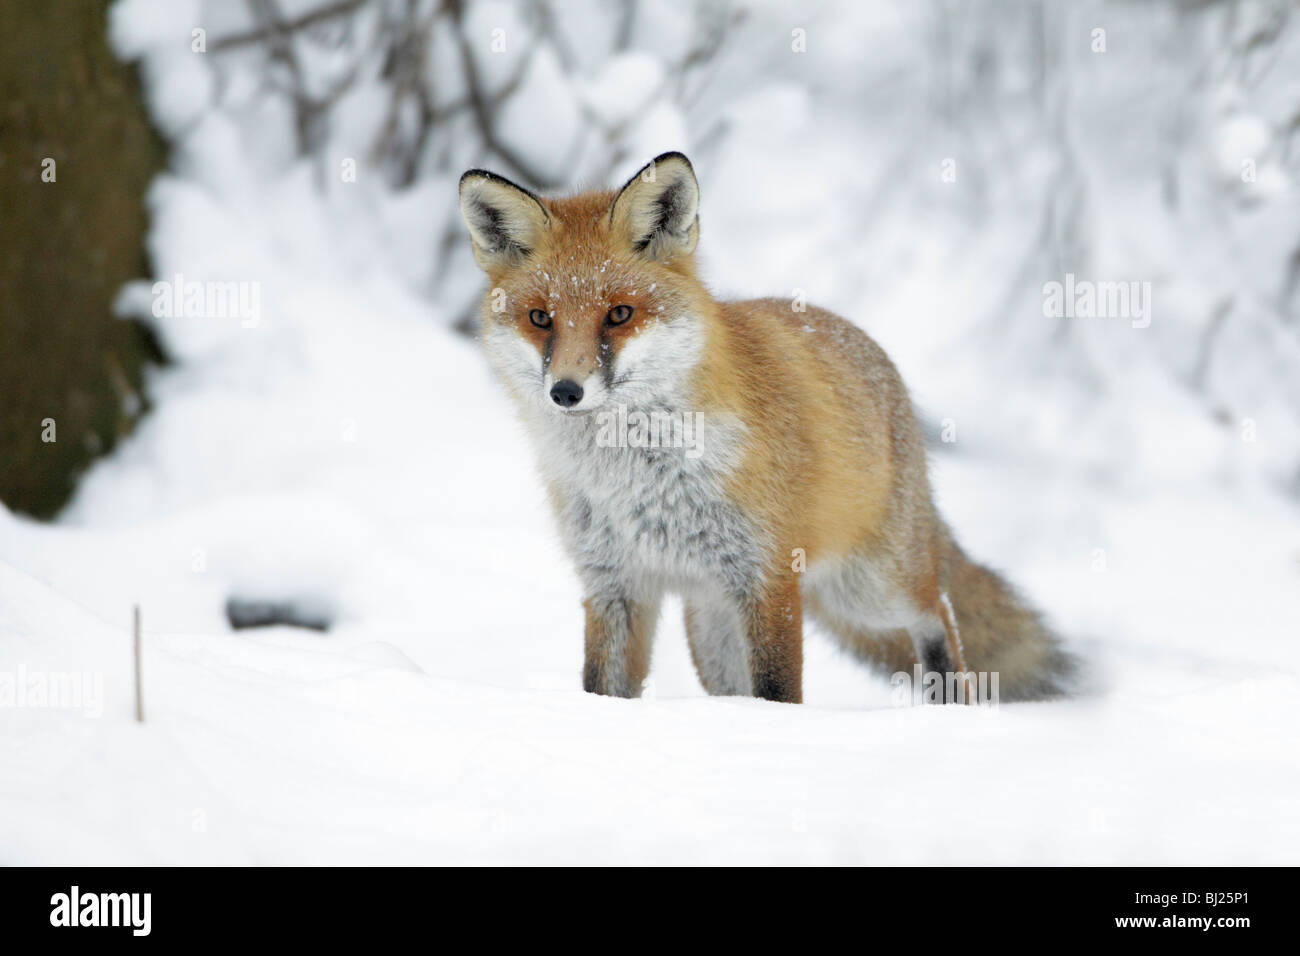 forest fox stockfotos forest fox bilder alamy. Black Bedroom Furniture Sets. Home Design Ideas